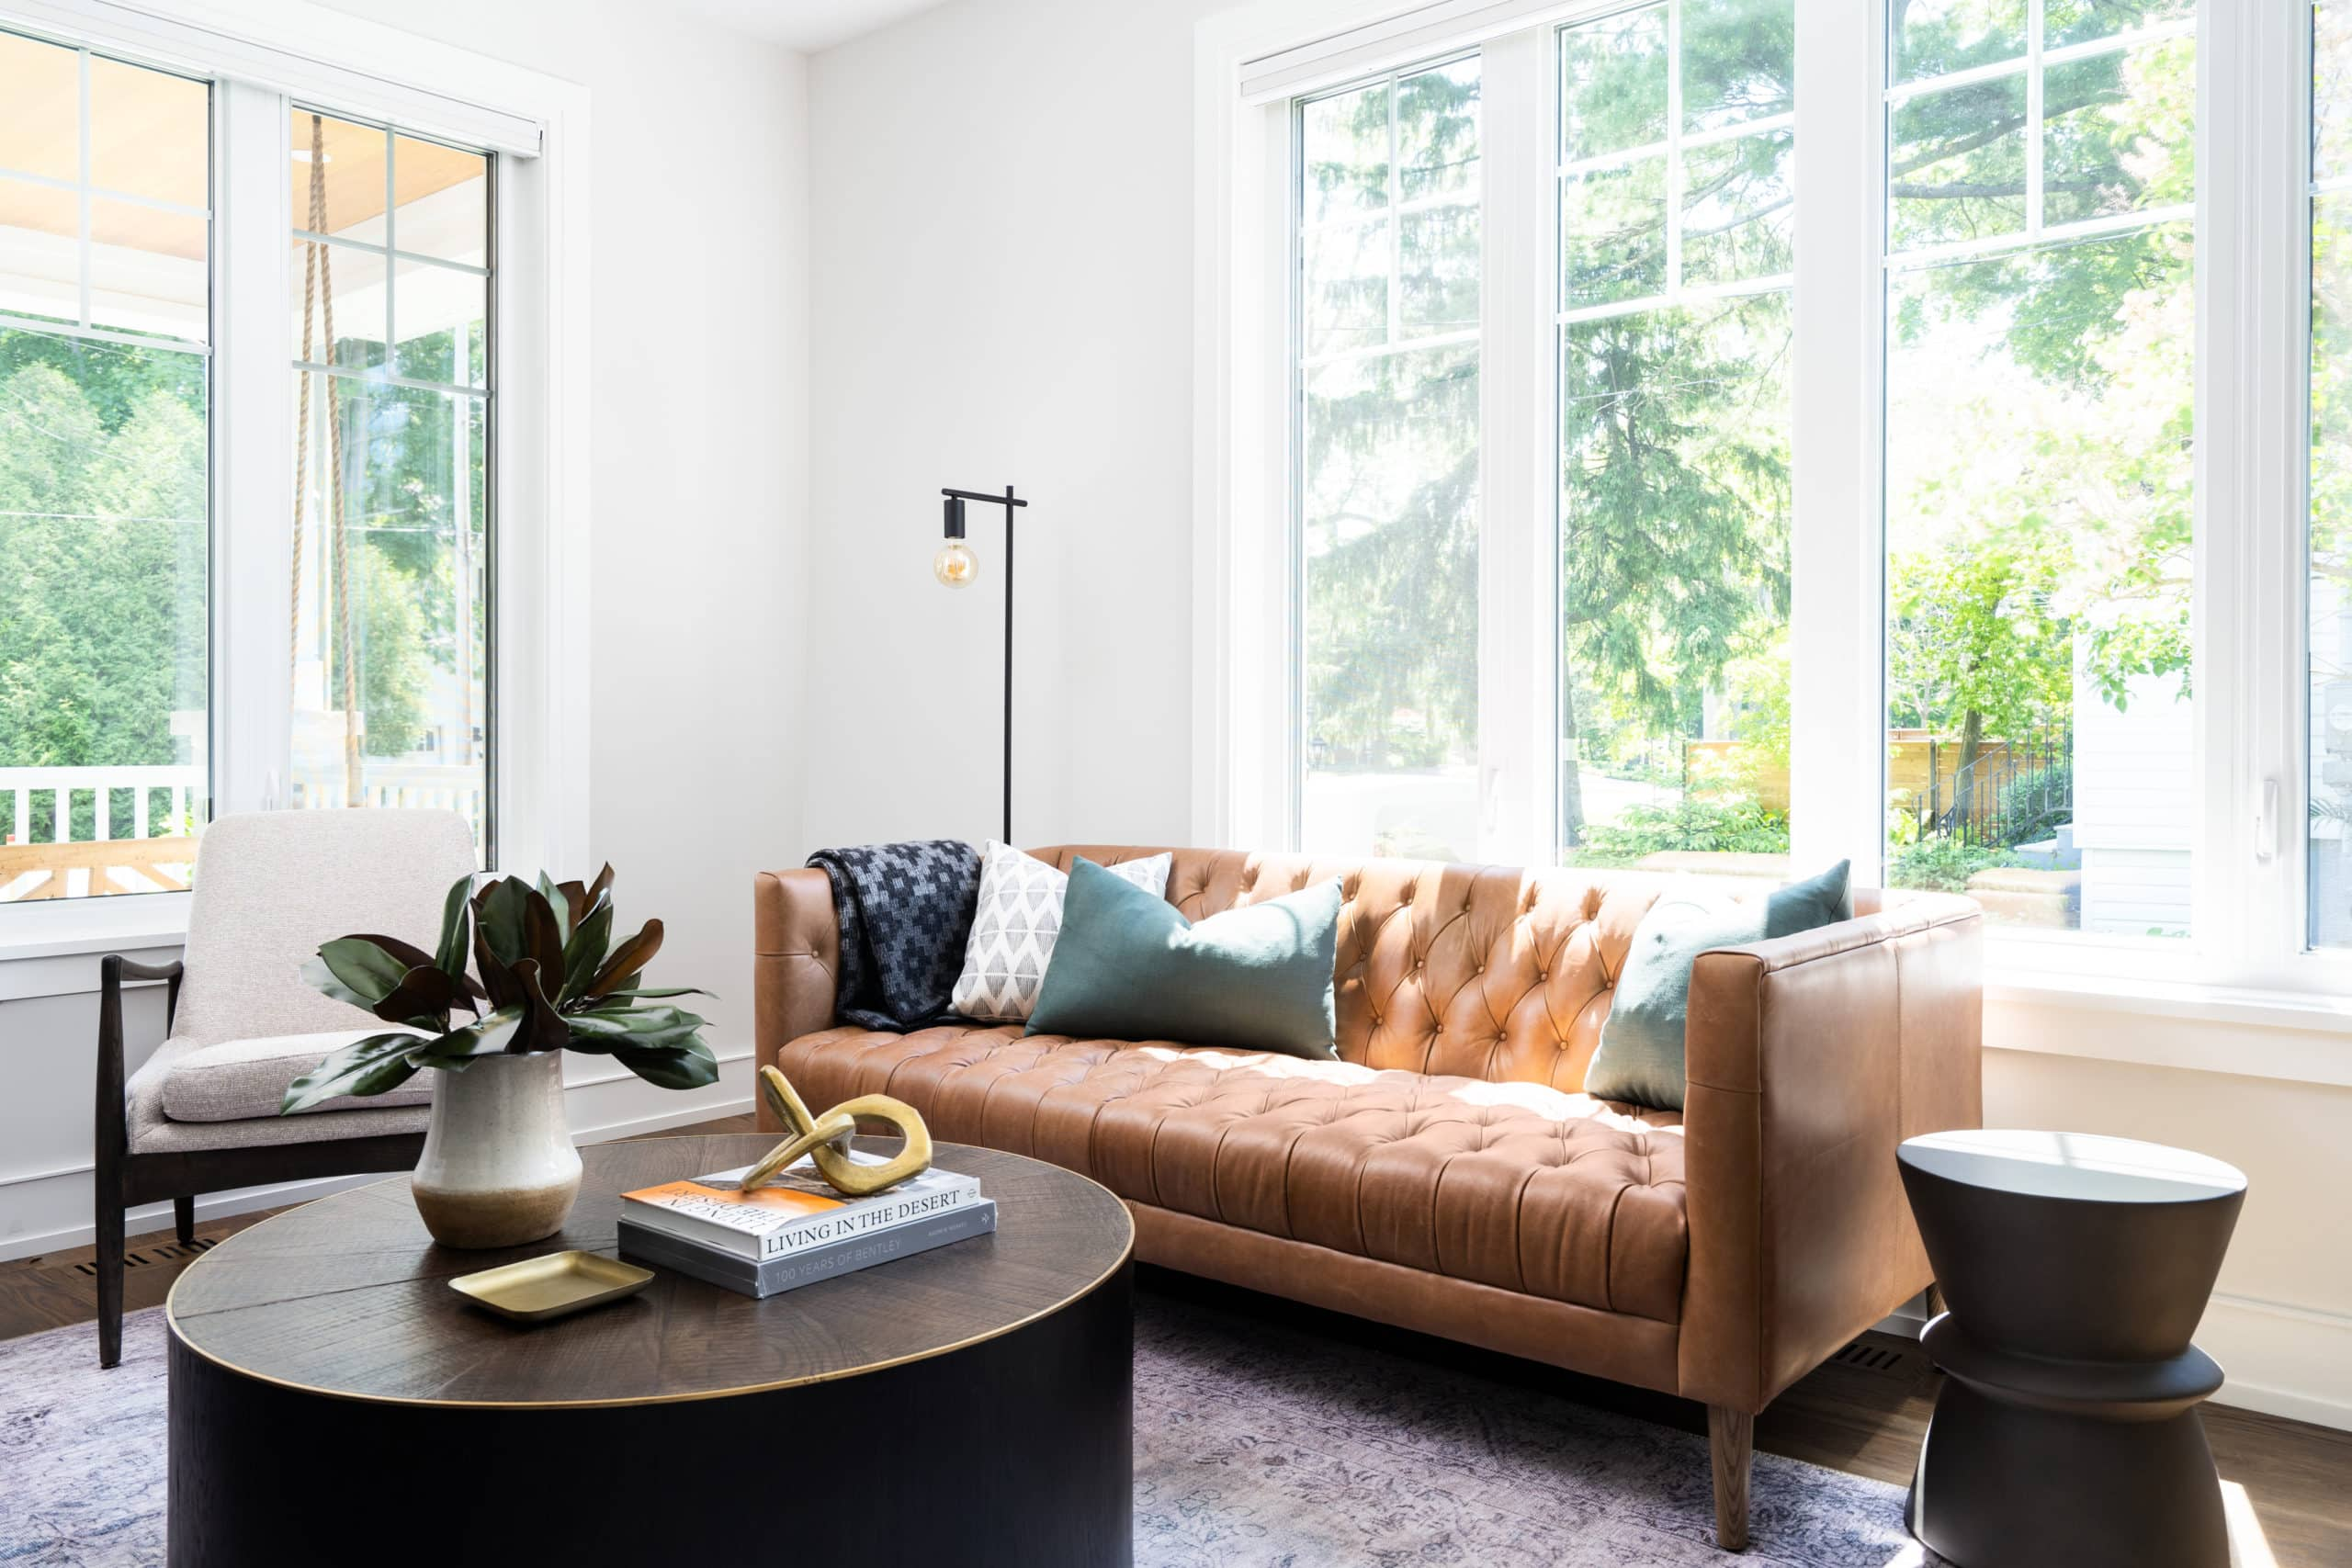 Modern living room with an orange couch and a circular coffee table